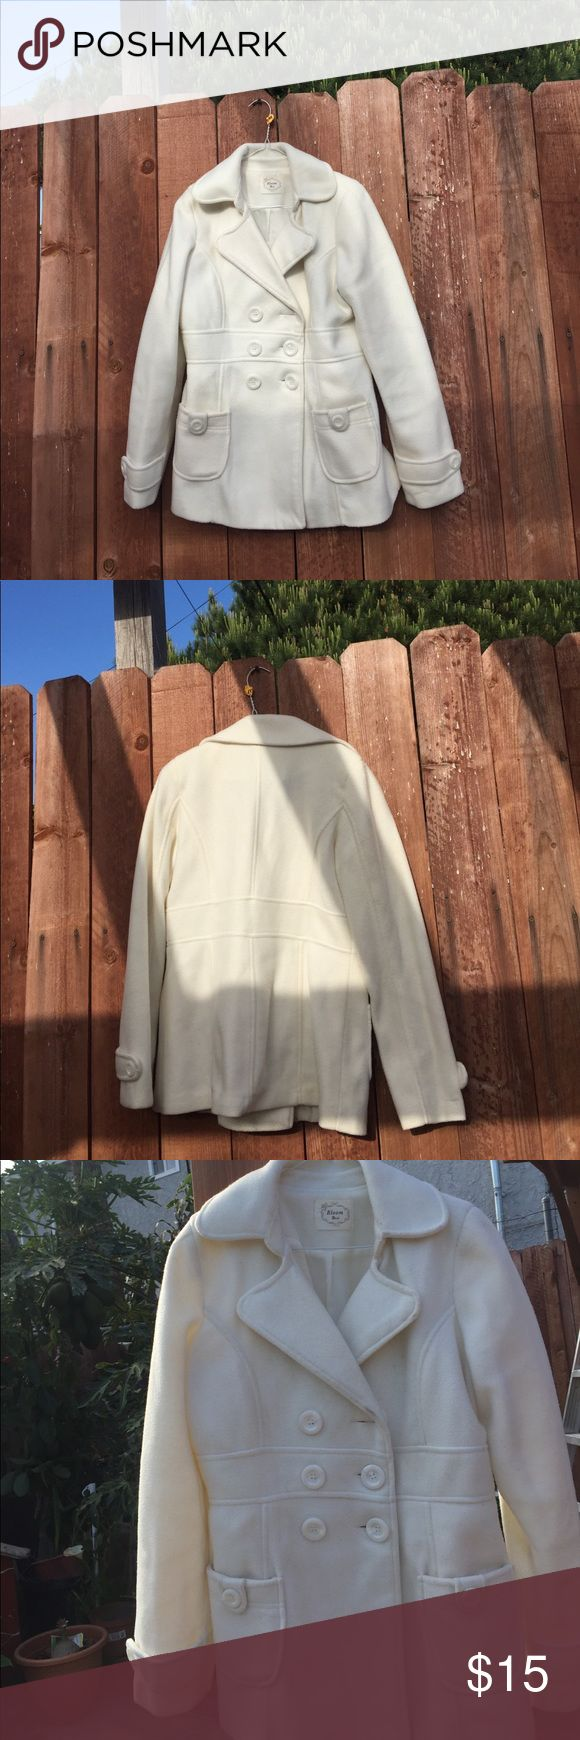 Cream Petite Coat ⭐️ Coat has a small stain on bottom left that is not noticeable when buttoned. Other than that it is in great condition! Jackets & Coats Trench Coats